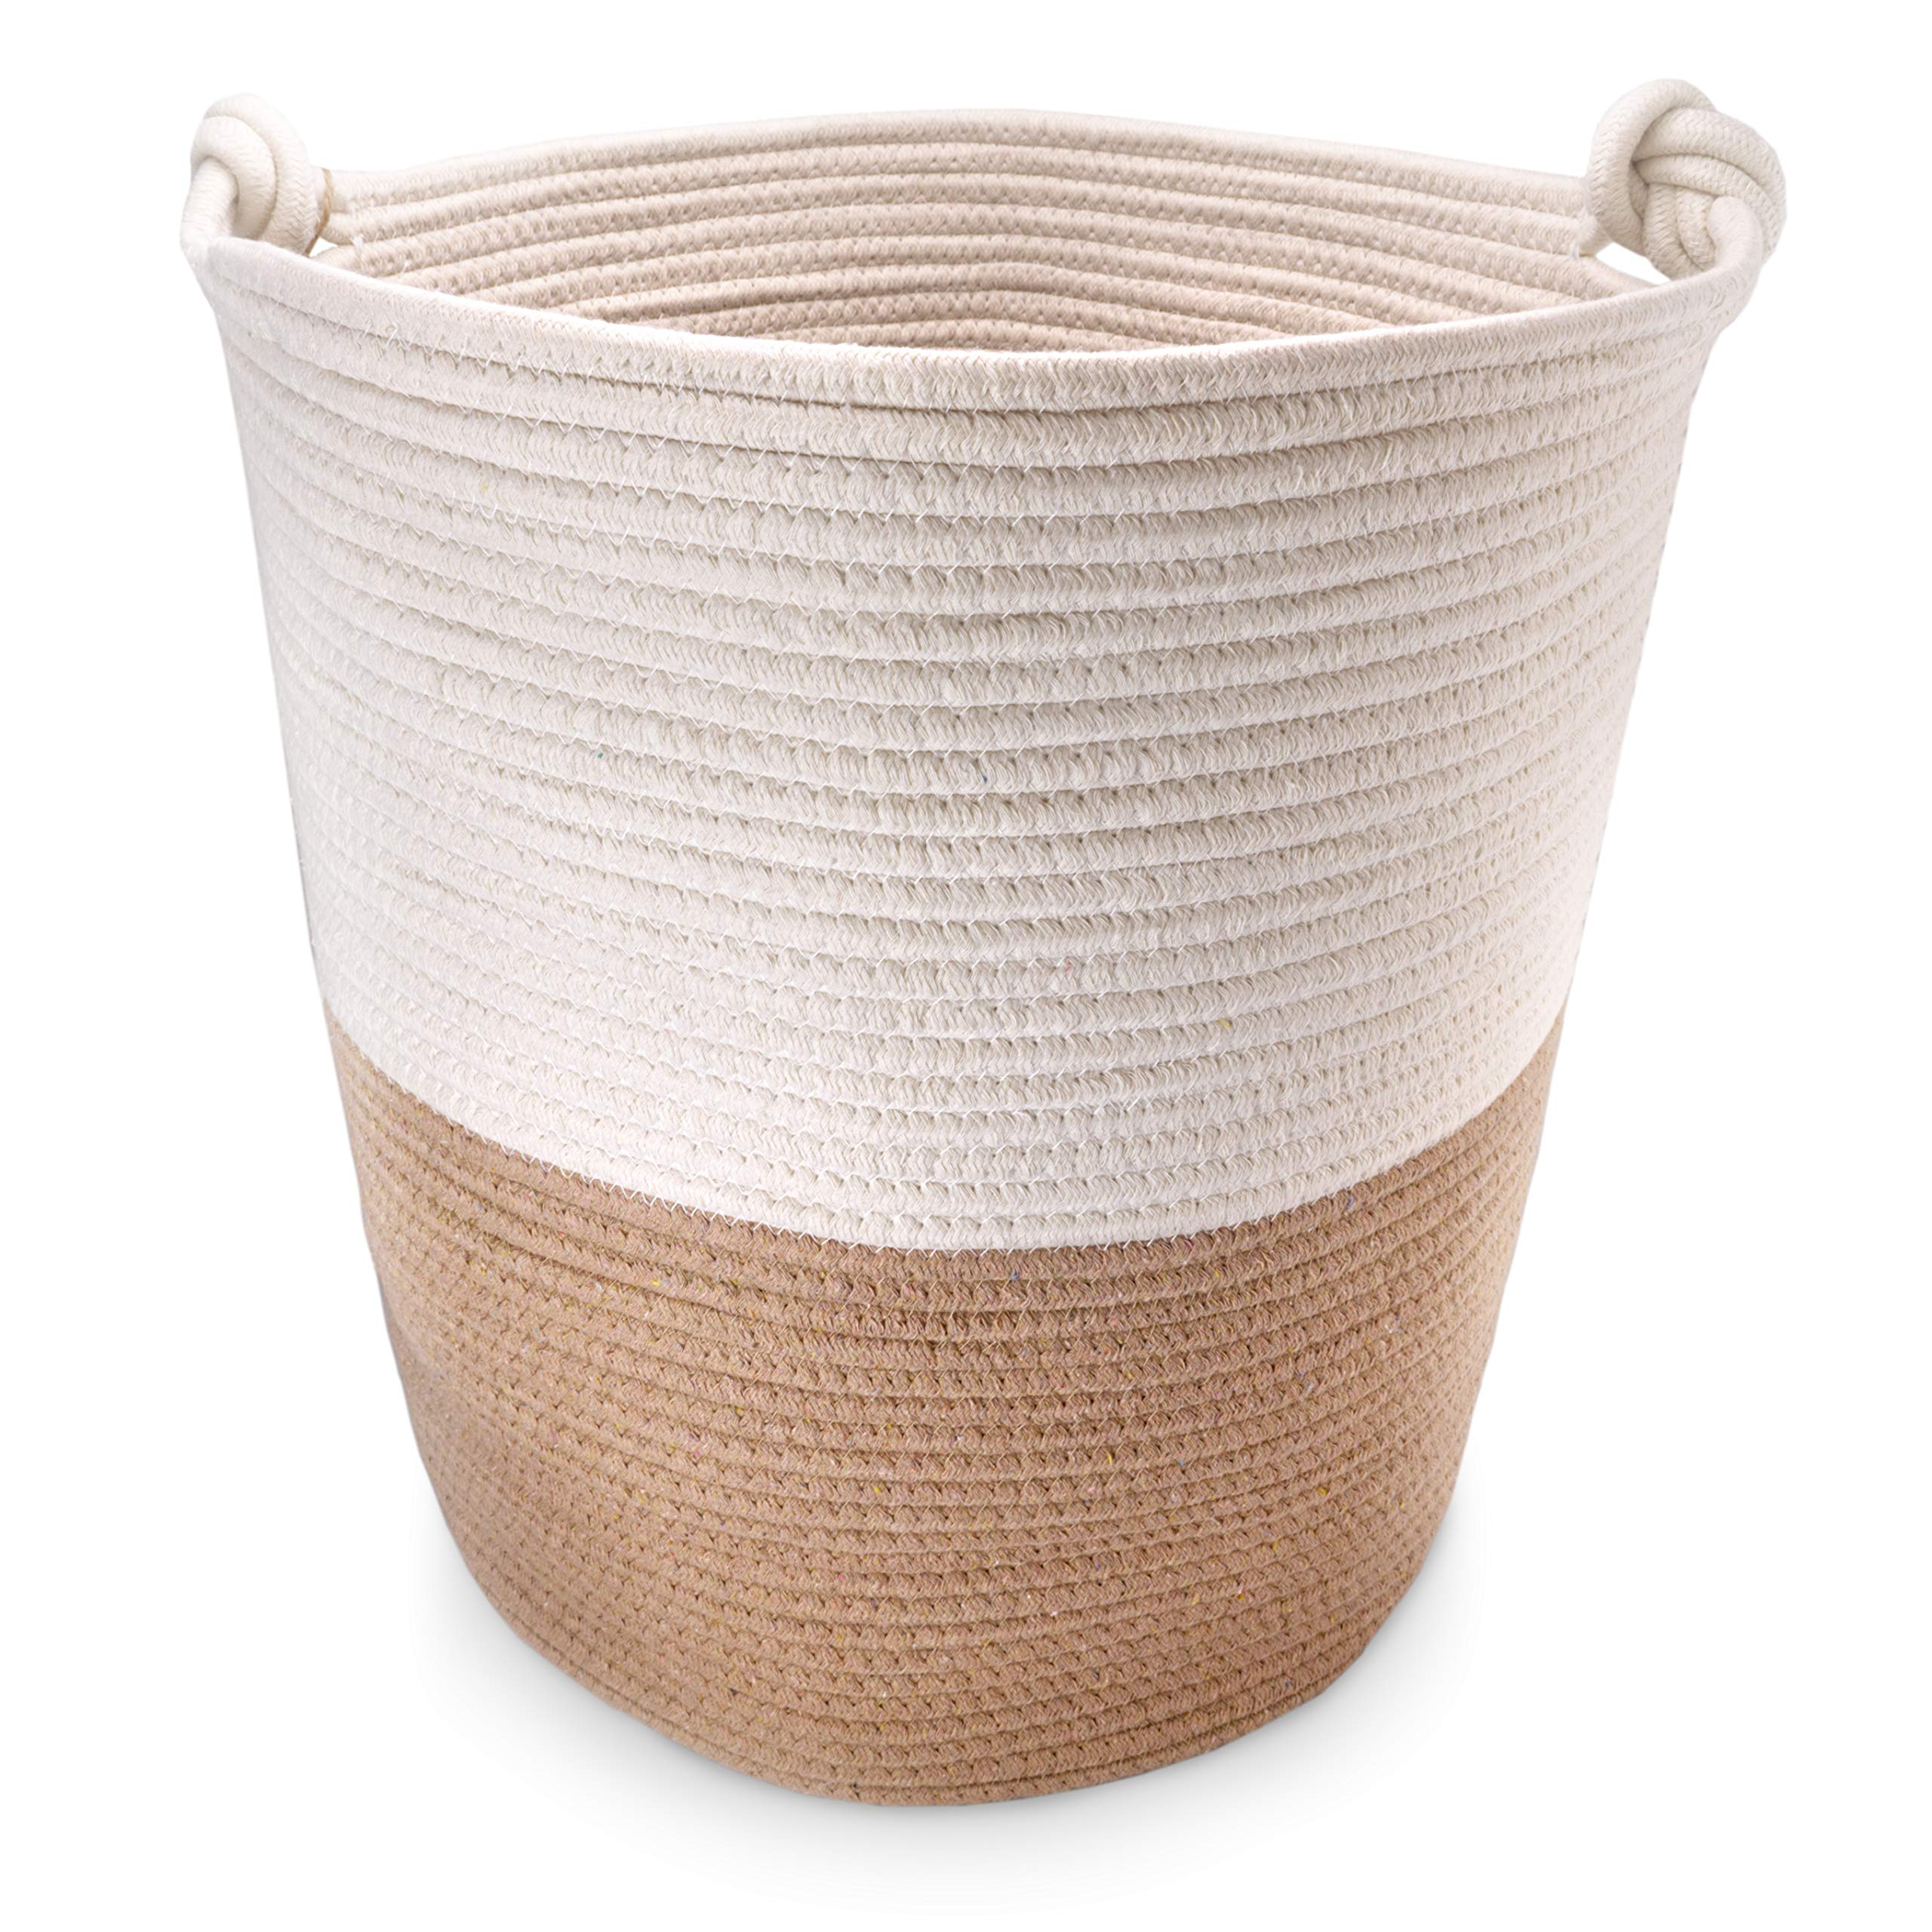 Large Cotton Rope Storage Baskets | Laundry | Woven | 18''x16'' | Blanket Holder with Handles | Baby Hamper | Toy Bin | Round Decorative Organizer | for Shoe Closet | Nursery | Living Room | Shelf by Alden & Obi